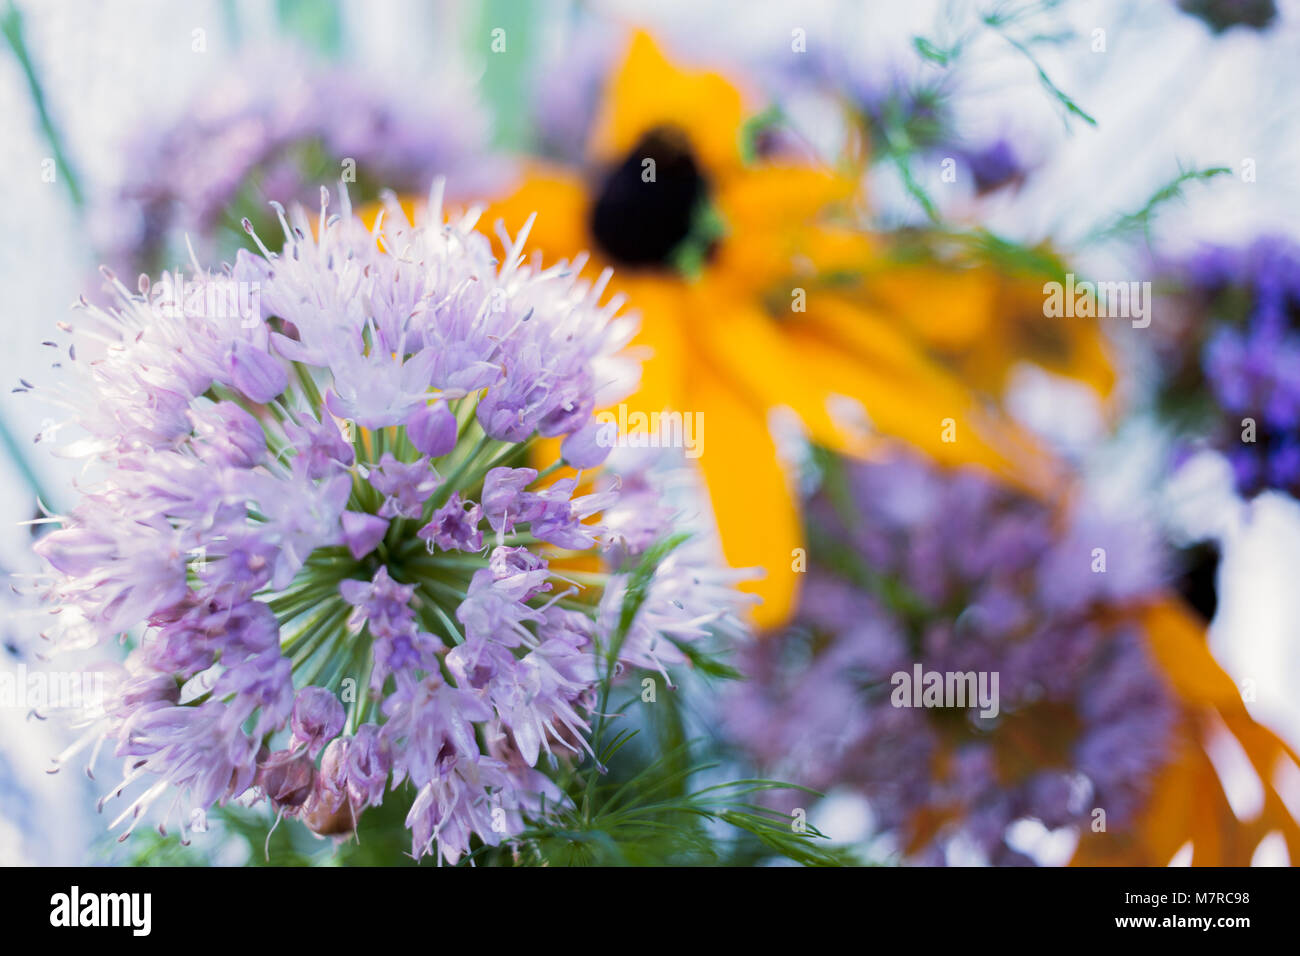 Summer background with soft focus with lilac and yellow garden flowers. Stock Photo